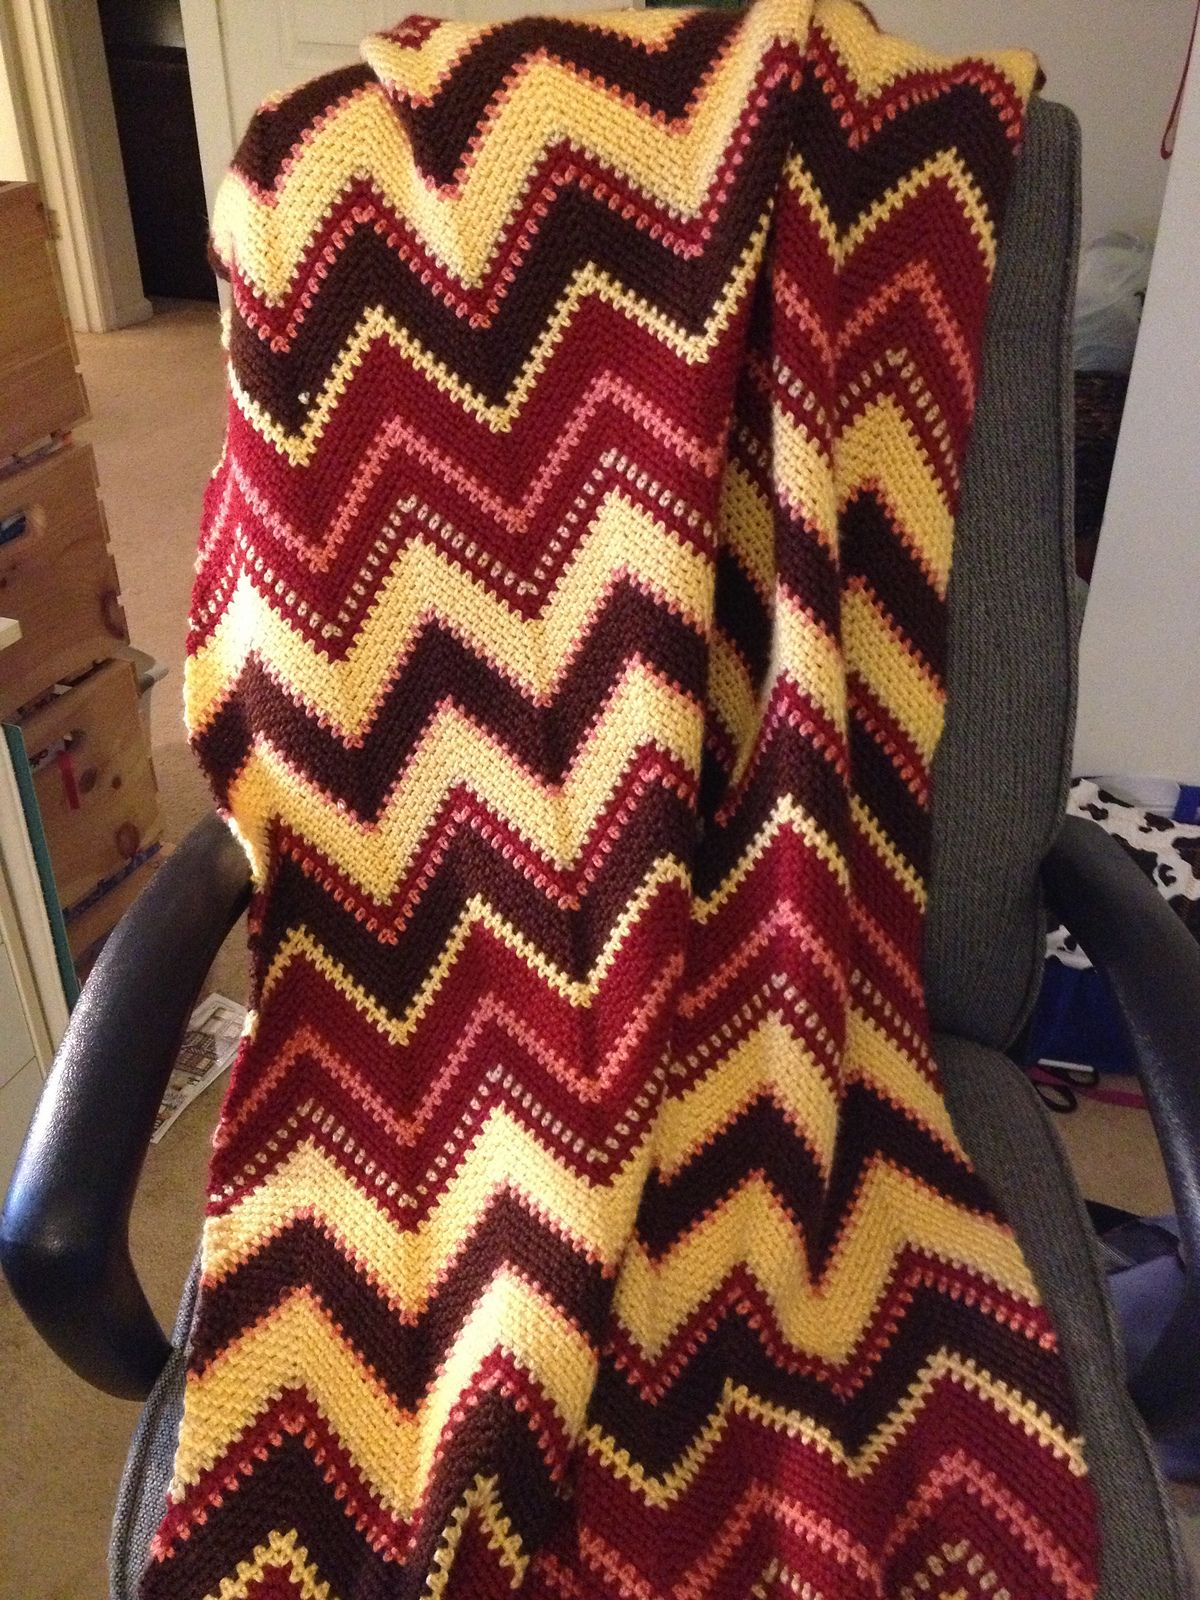 Fall zig zag afghan by bernat design studio free crochet pattern fall zig zag afghan by bernat design studio free crochet pattern ravelry bankloansurffo Image collections